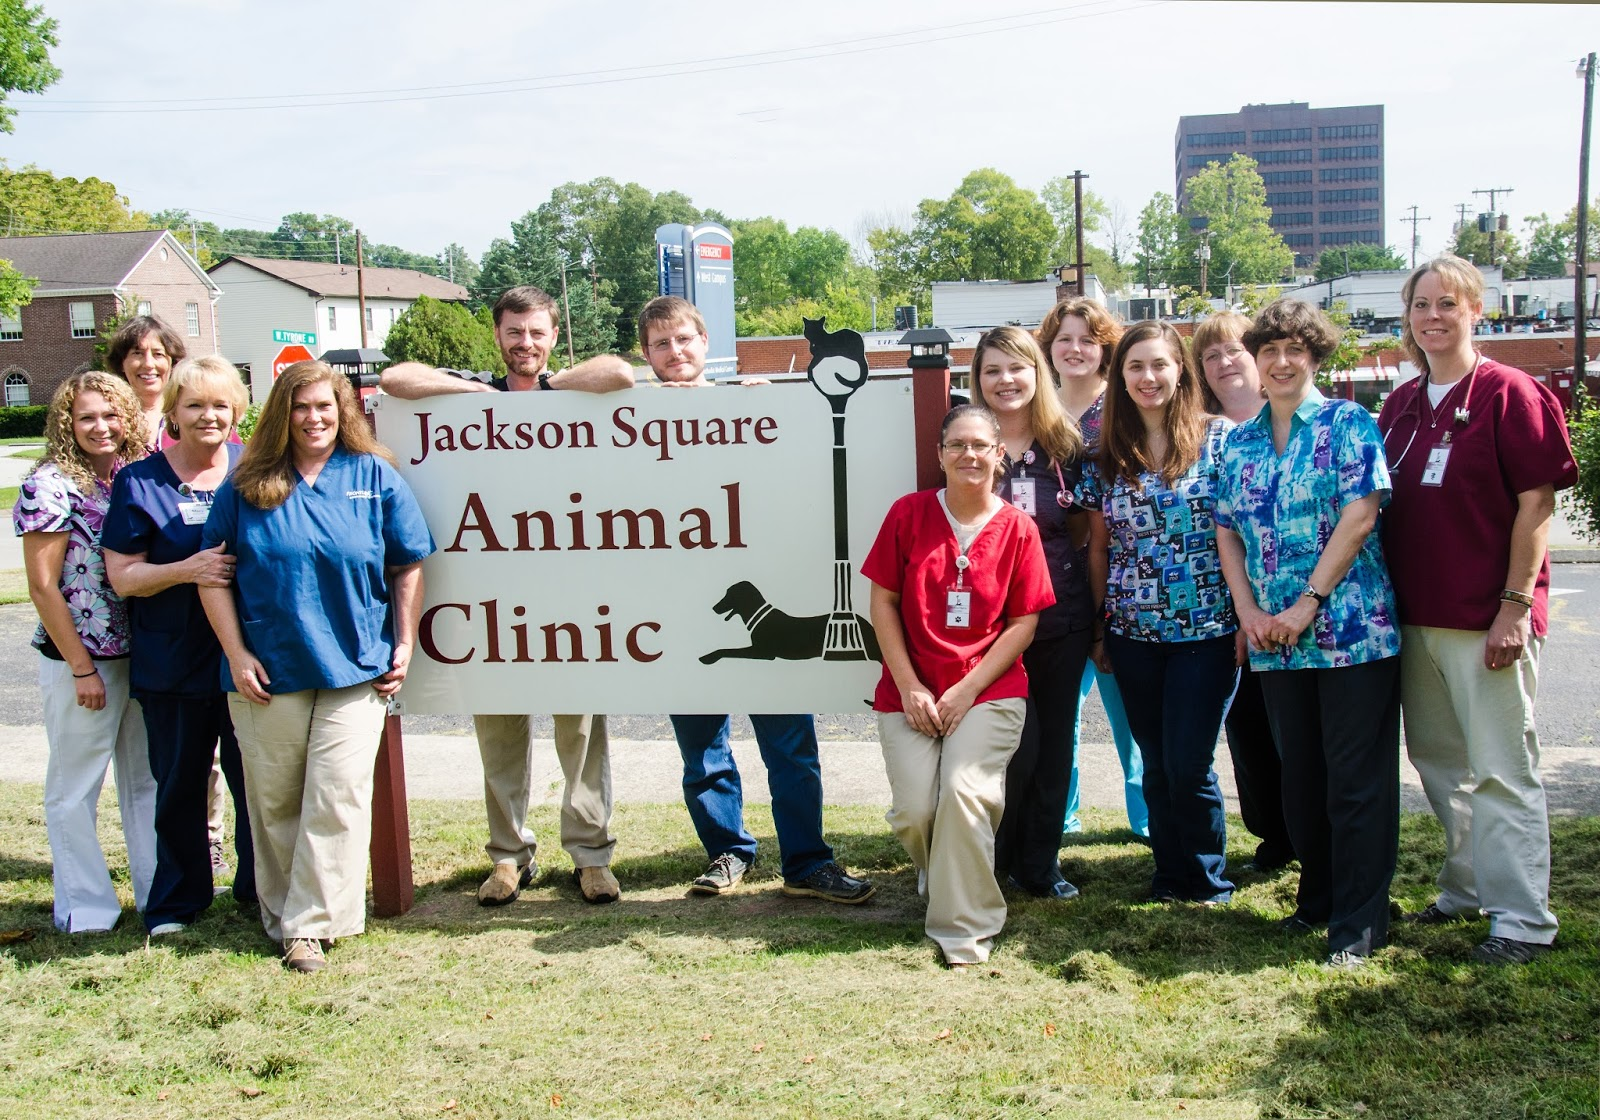 Jackson Sq. Animal Clinic staff photo